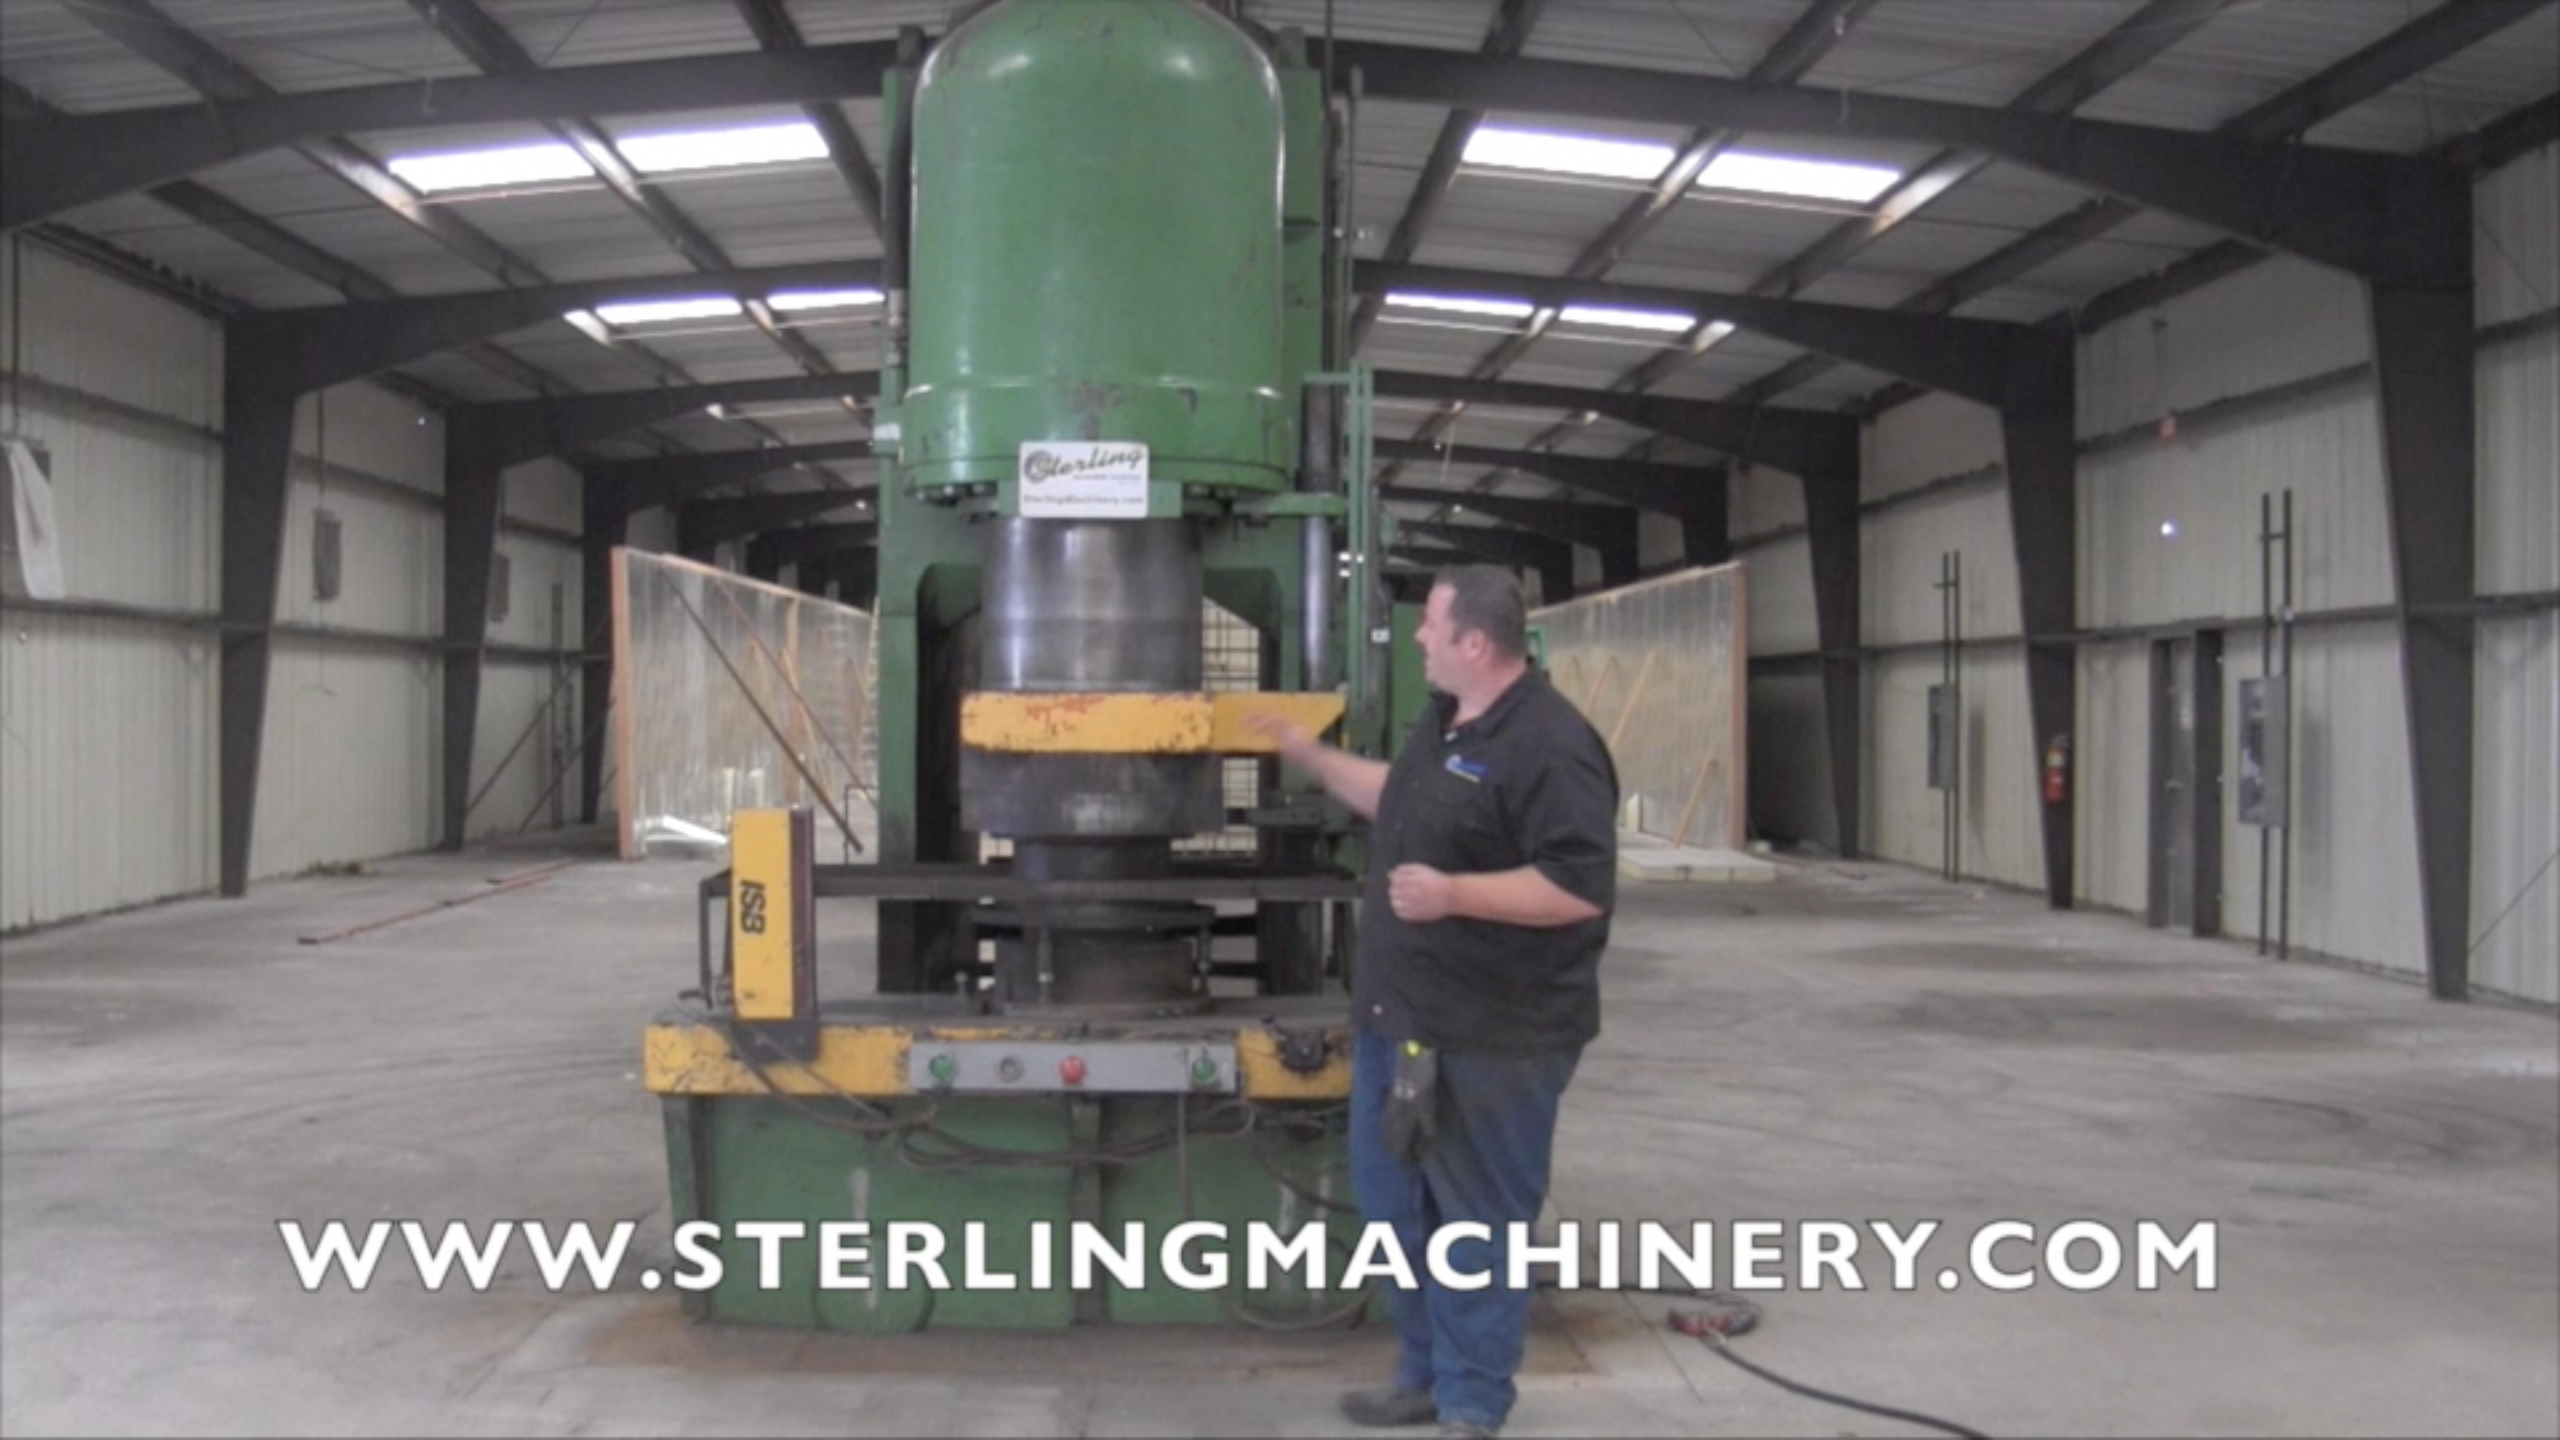 Machinery Videos Of Dealer Machine Tools Showing Used Lathe Milling Rotative Speed Regulator Borer Driller Controller 750 Ton X 18 Pacific Hydraulic Pressformer Press Dual Palm Control Safety Light Curtains A4336